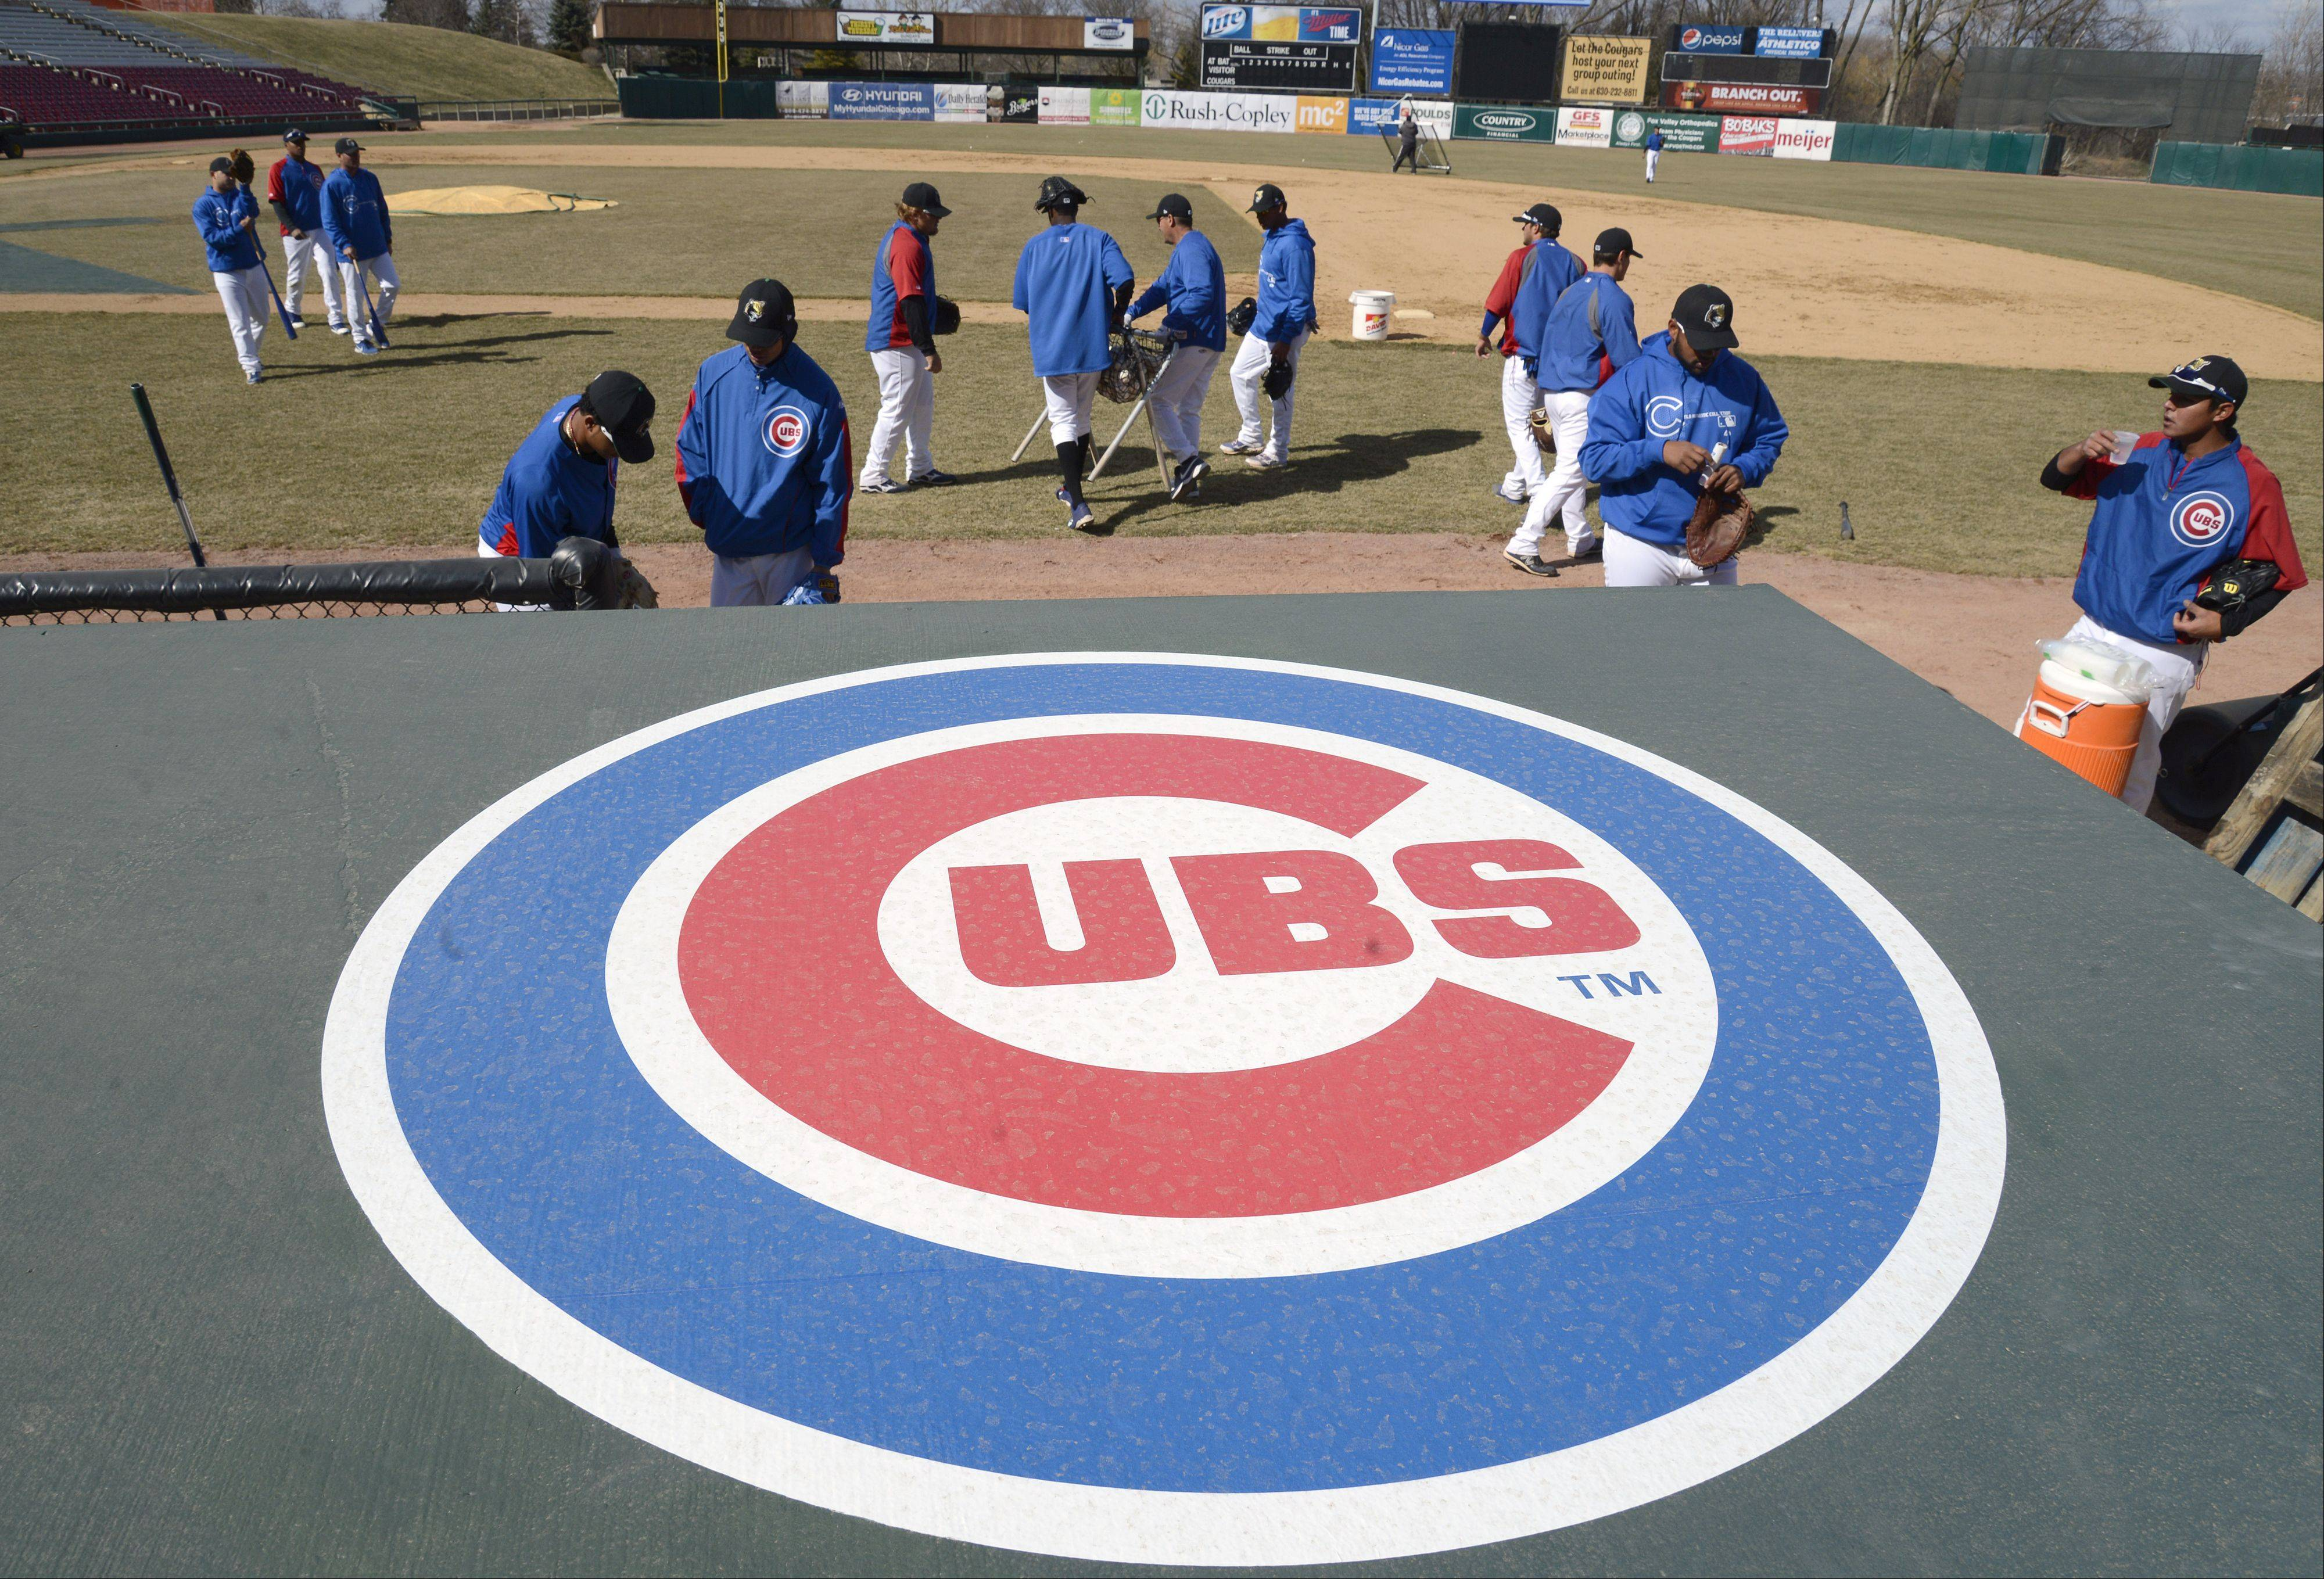 The Kane County Cougars, an affiliate of the Chicago Cubs, head out to the diamond at Fifth Third Ballpark in Geneva on Tuesday for some practice. The team also wore their Cubs jerseys for the workout. The two organizations have a two-year player development contract.